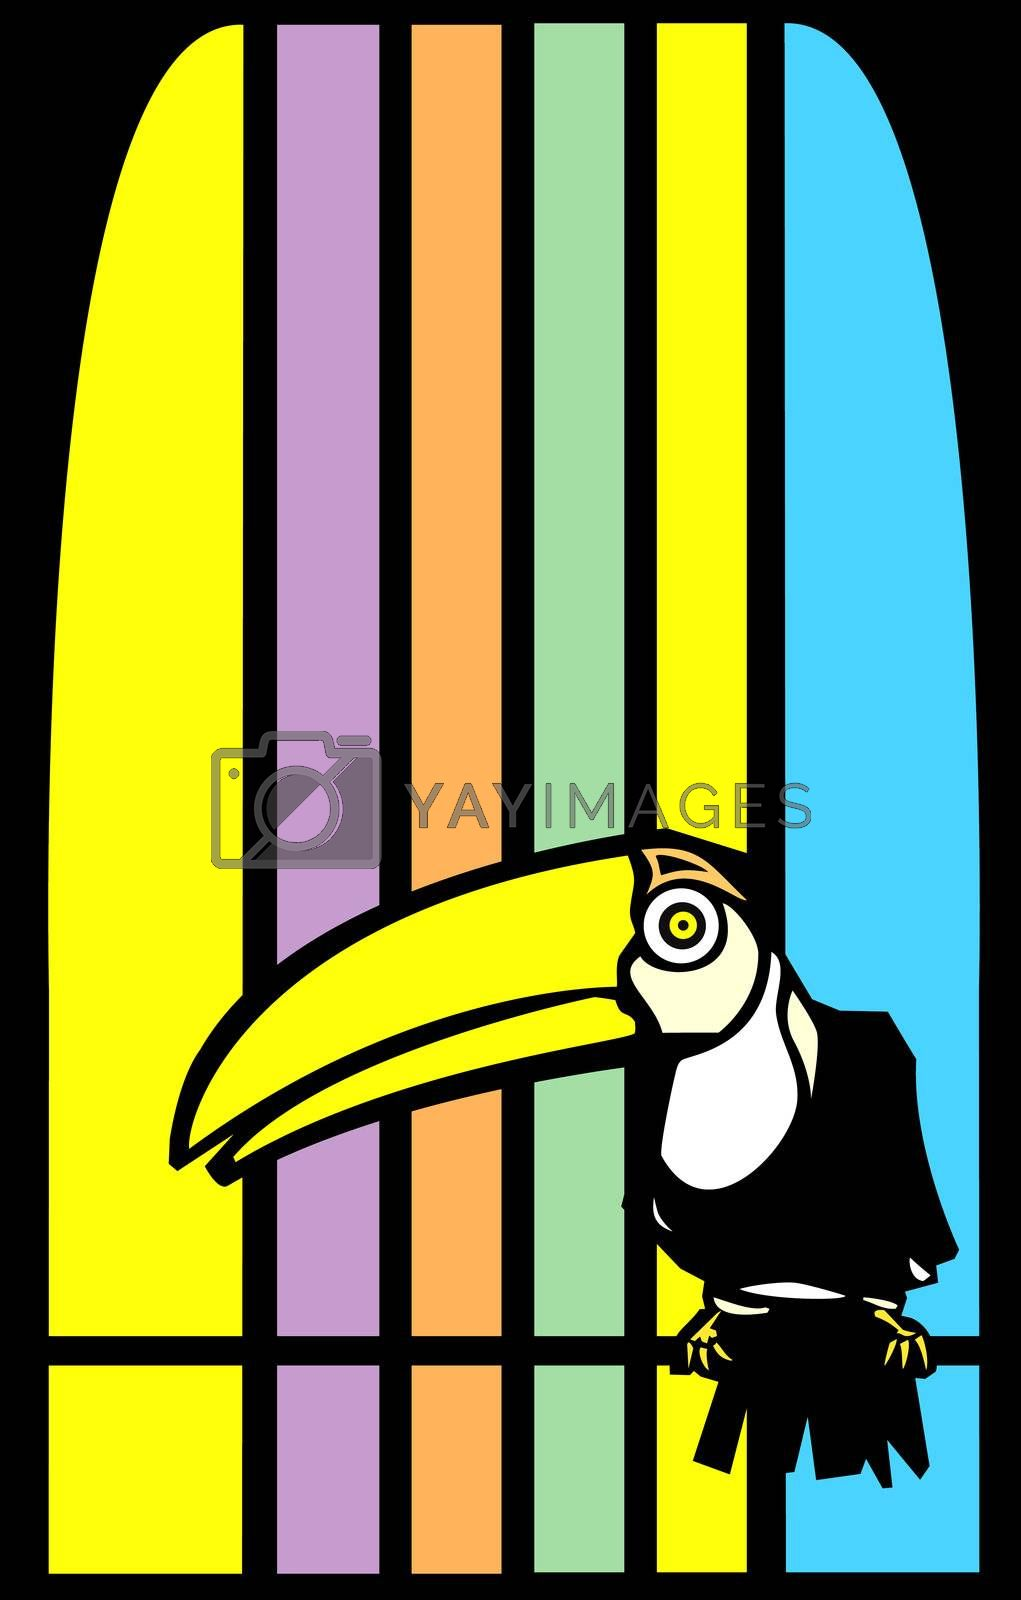 Tropical toucan bird with stripes in background.